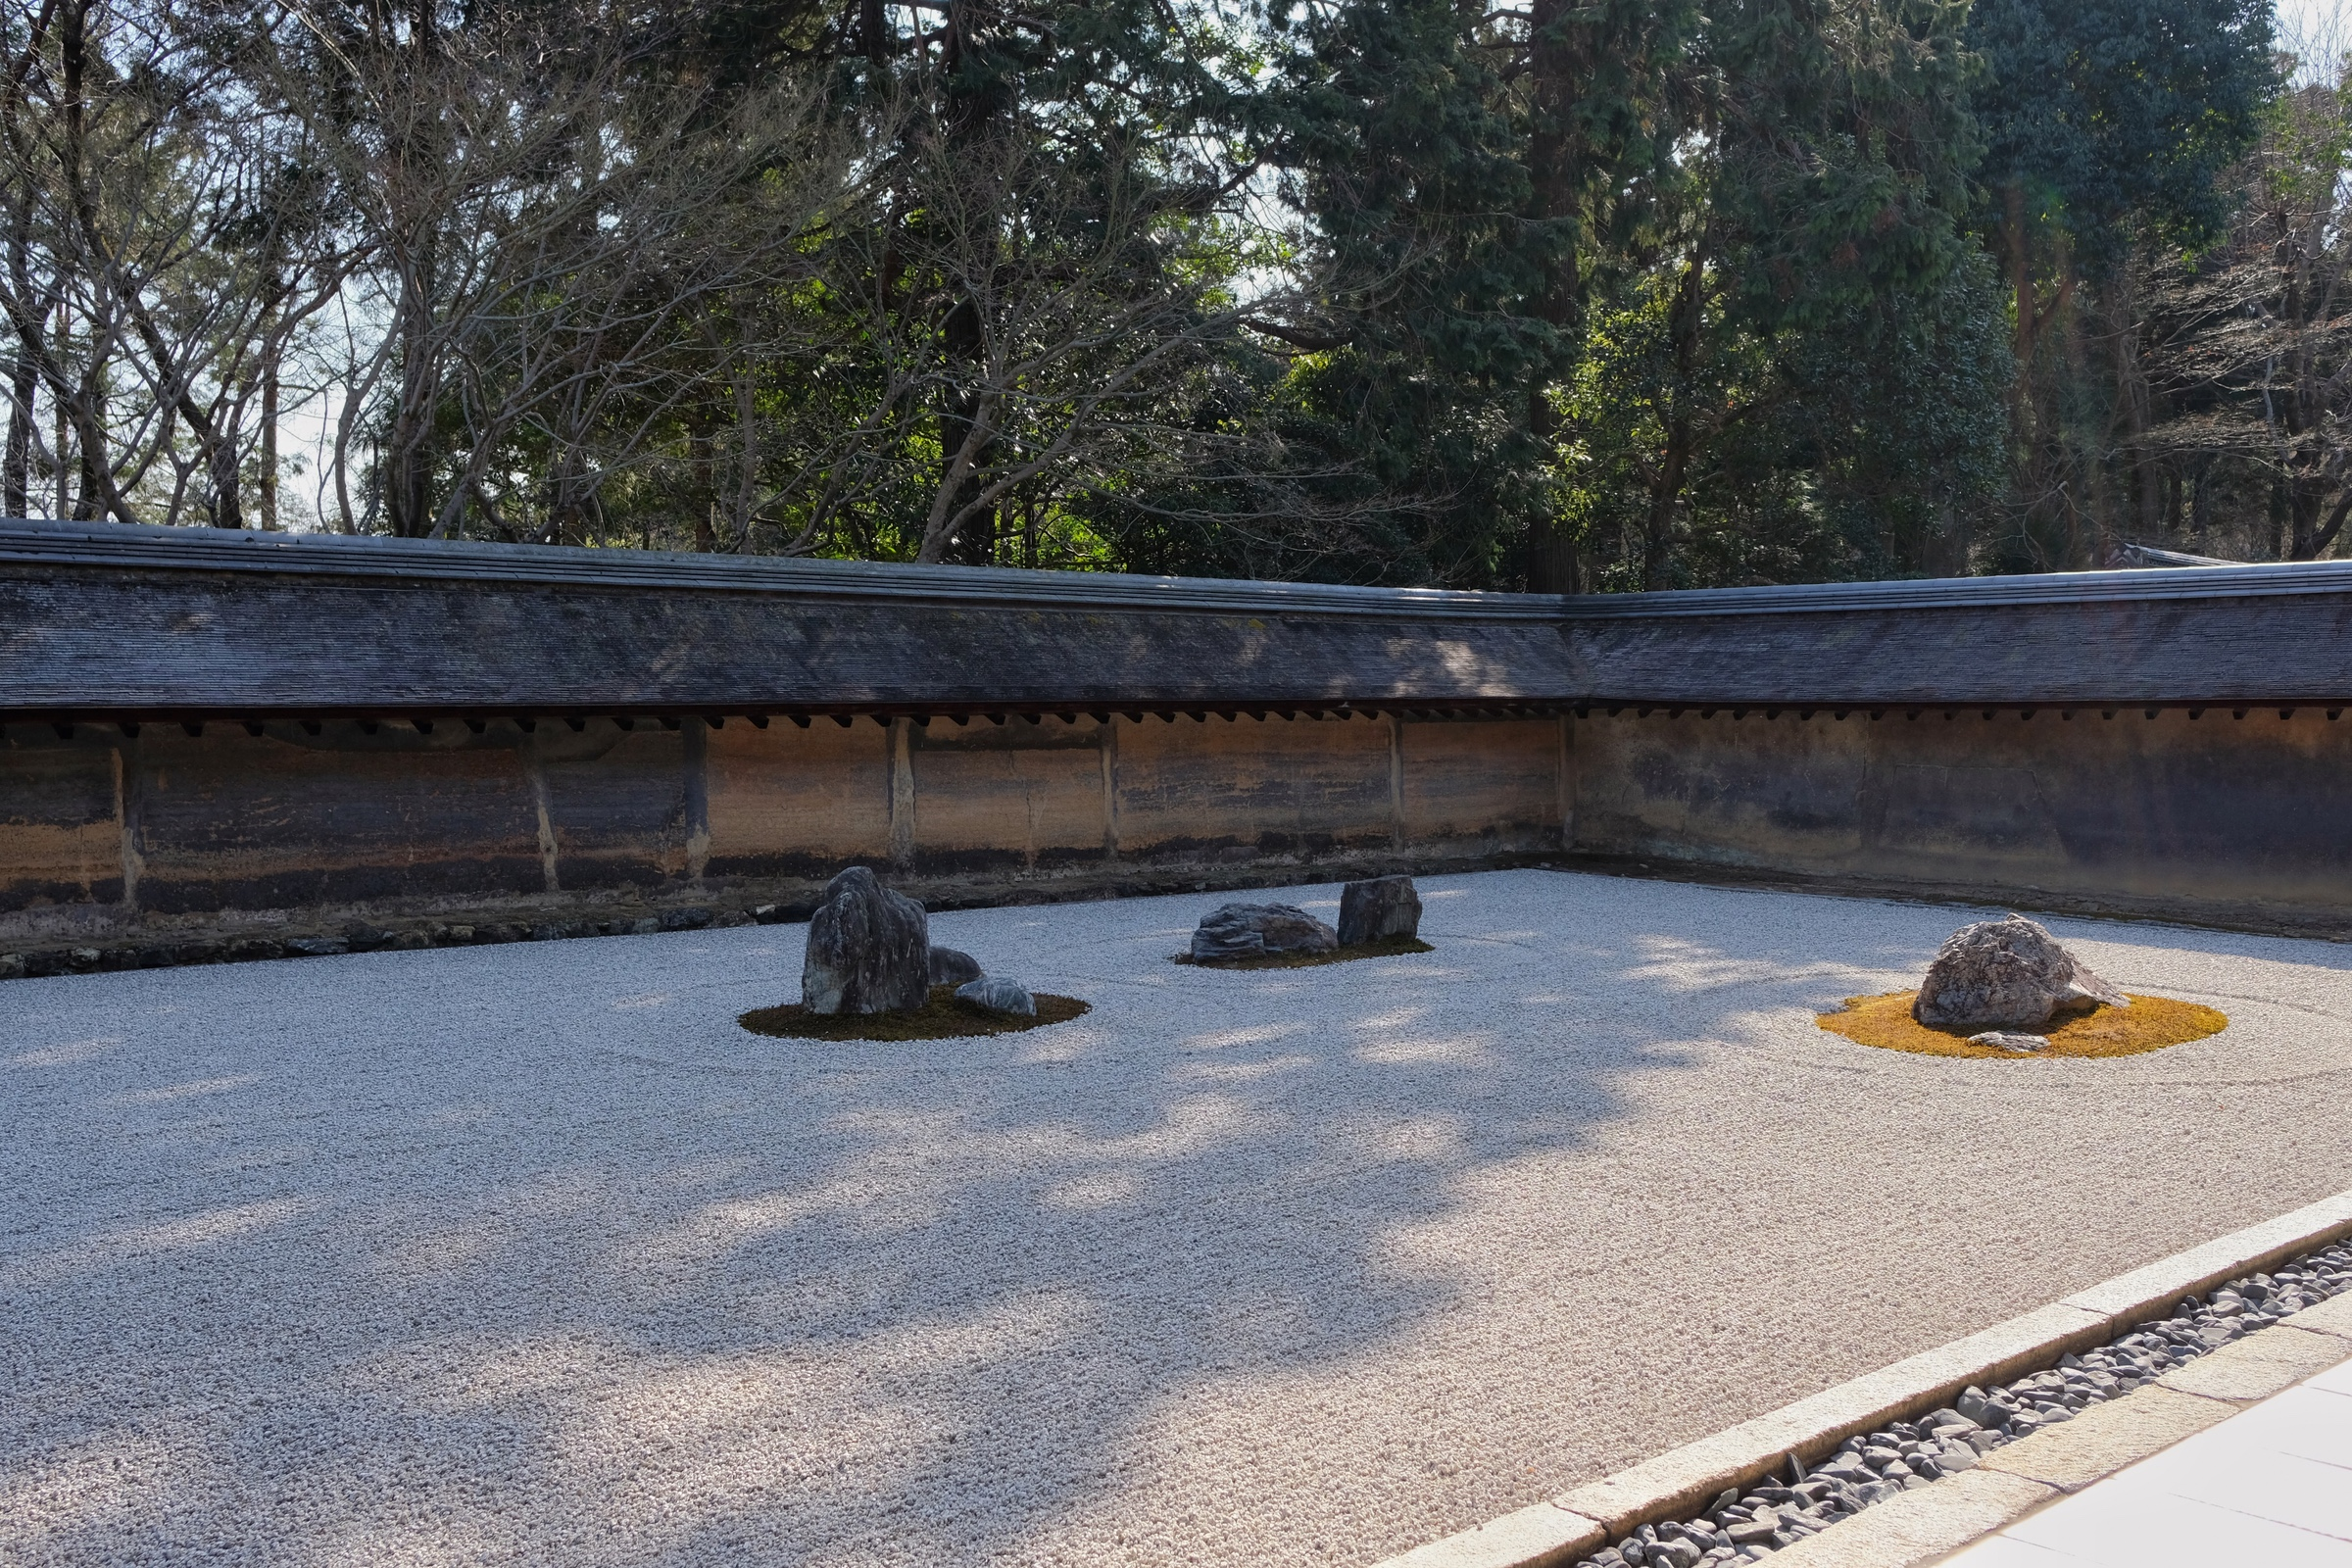 Japan - Kyoto - Ryōan-ji Temple